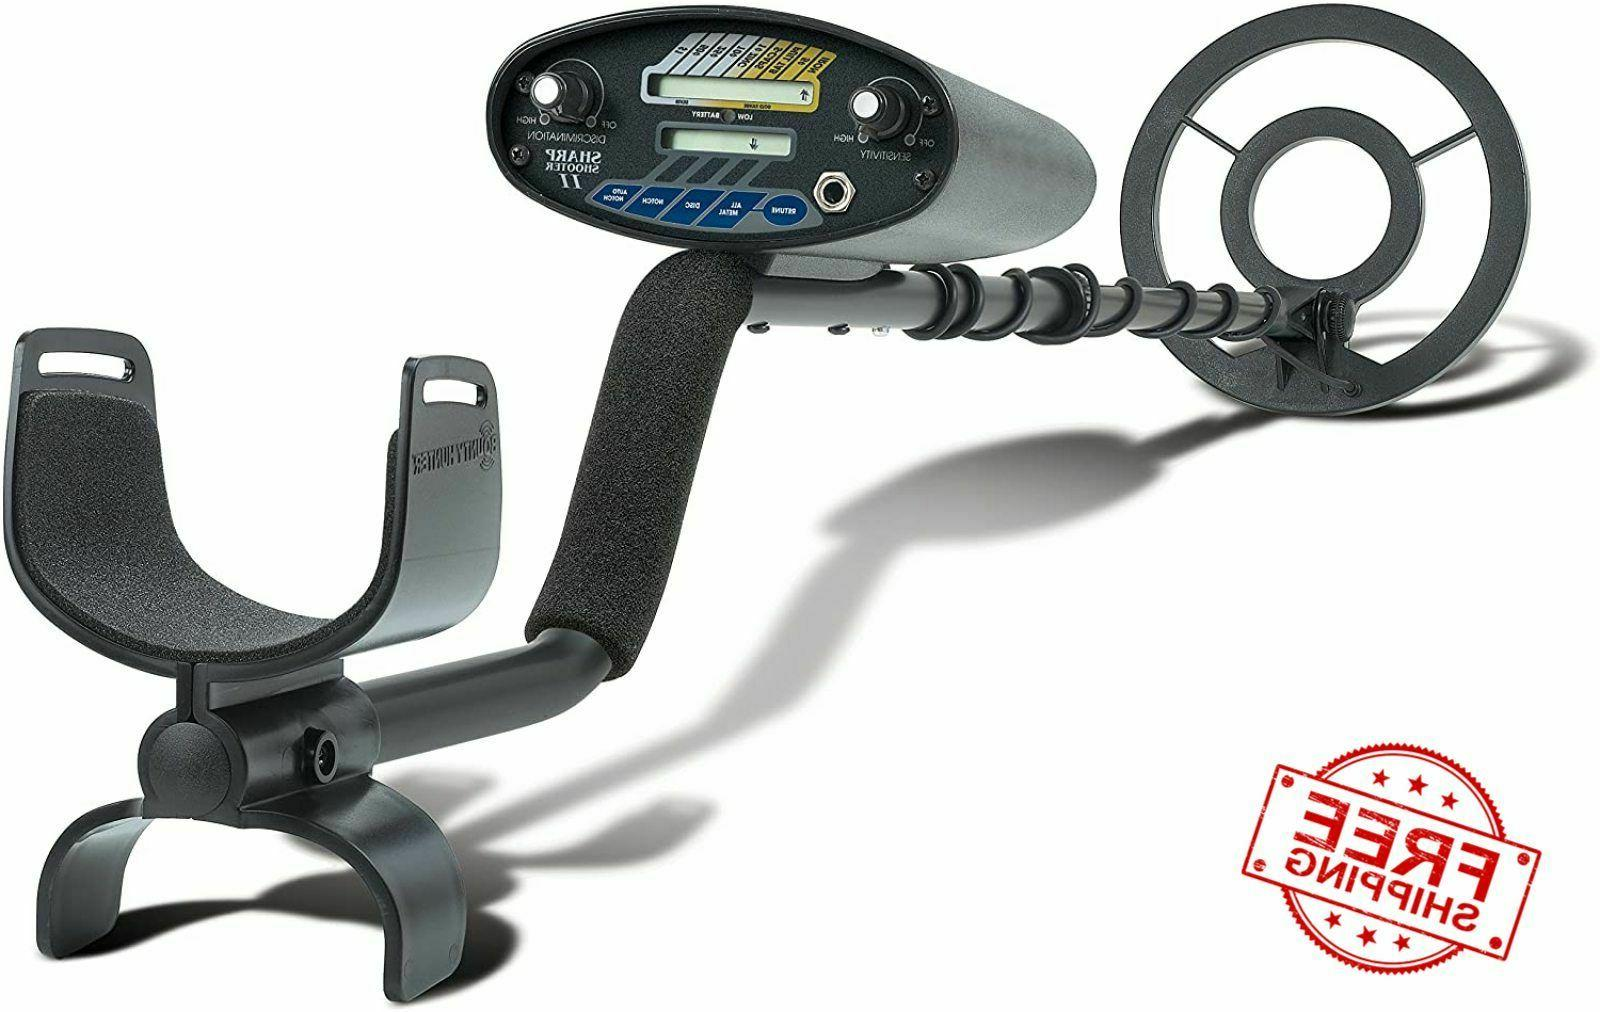 Bounty Hunter SS2 Sharpshooter II Metal Detector Treasure Fi